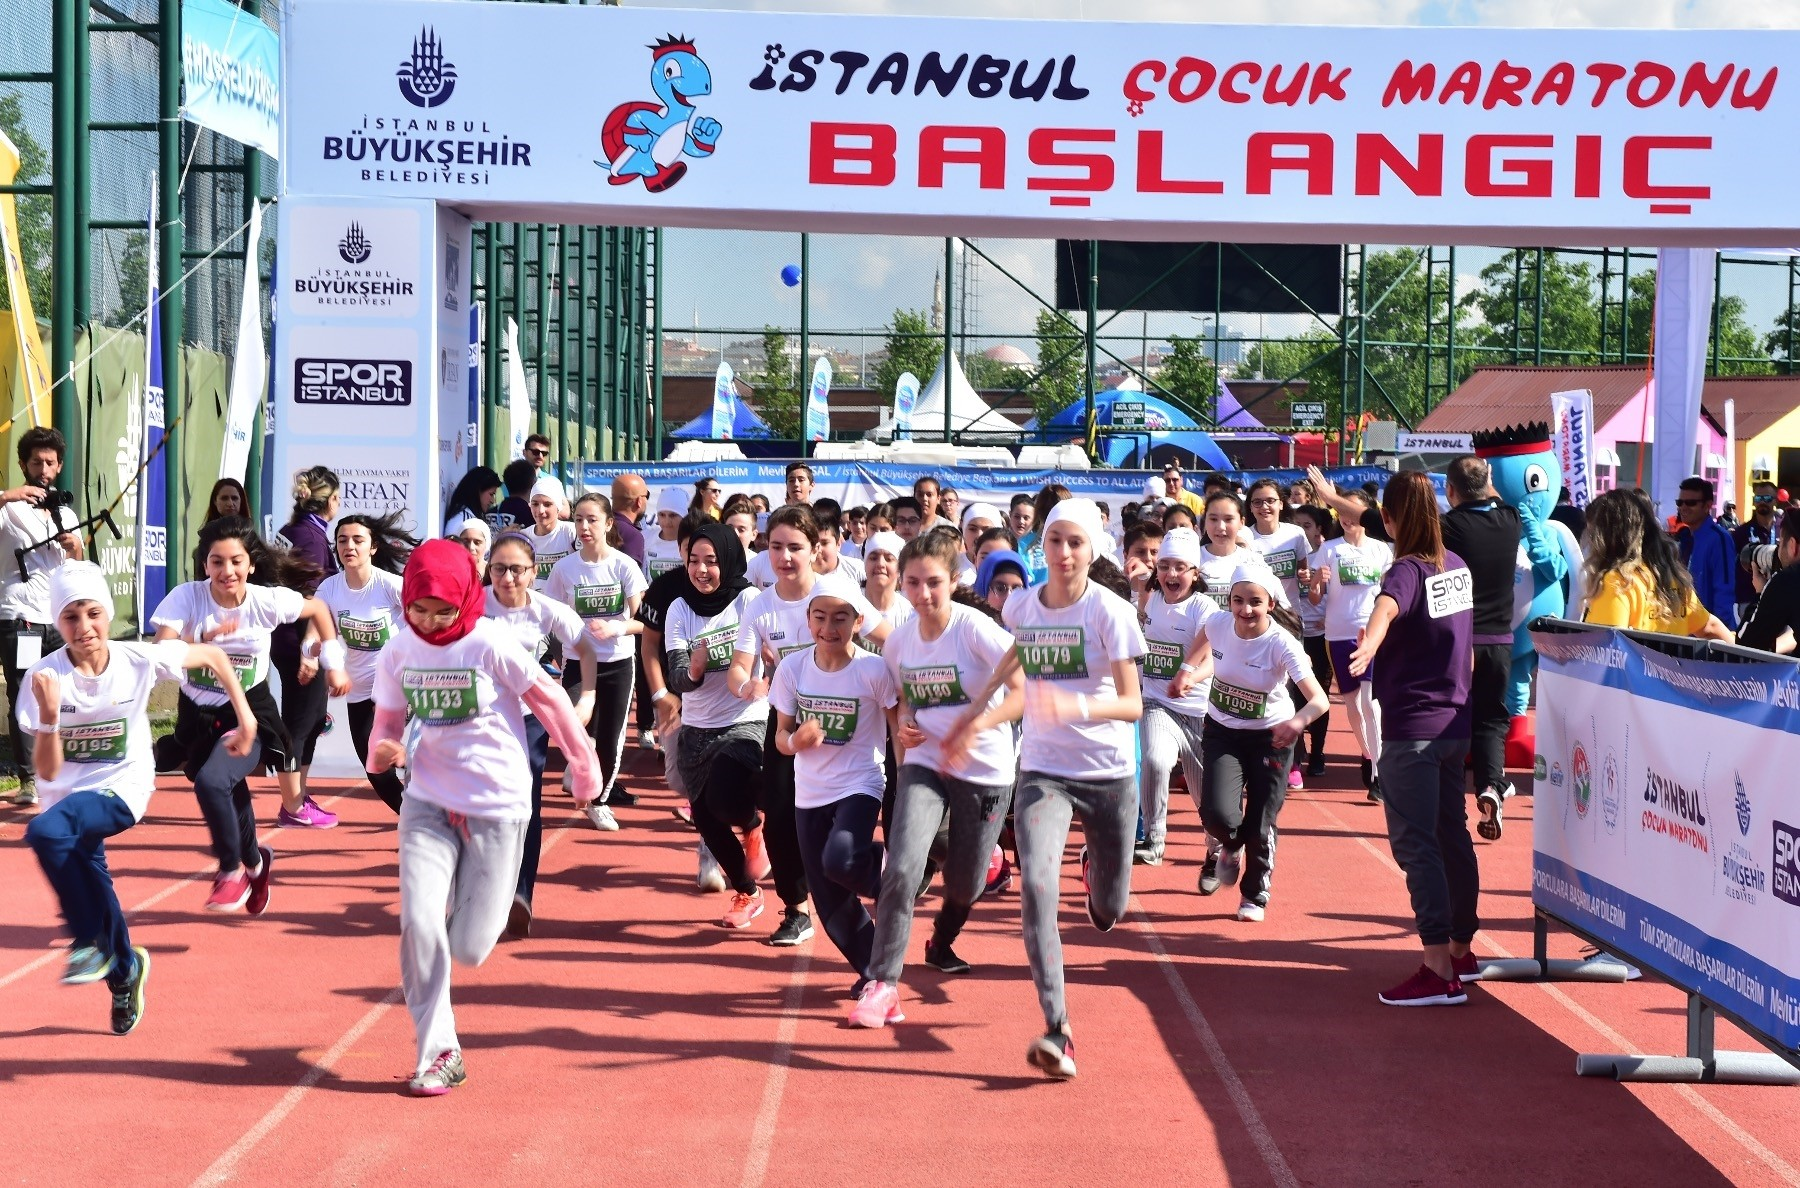 Children of all ages raced in the marathon though  the length of track got longer with their age.